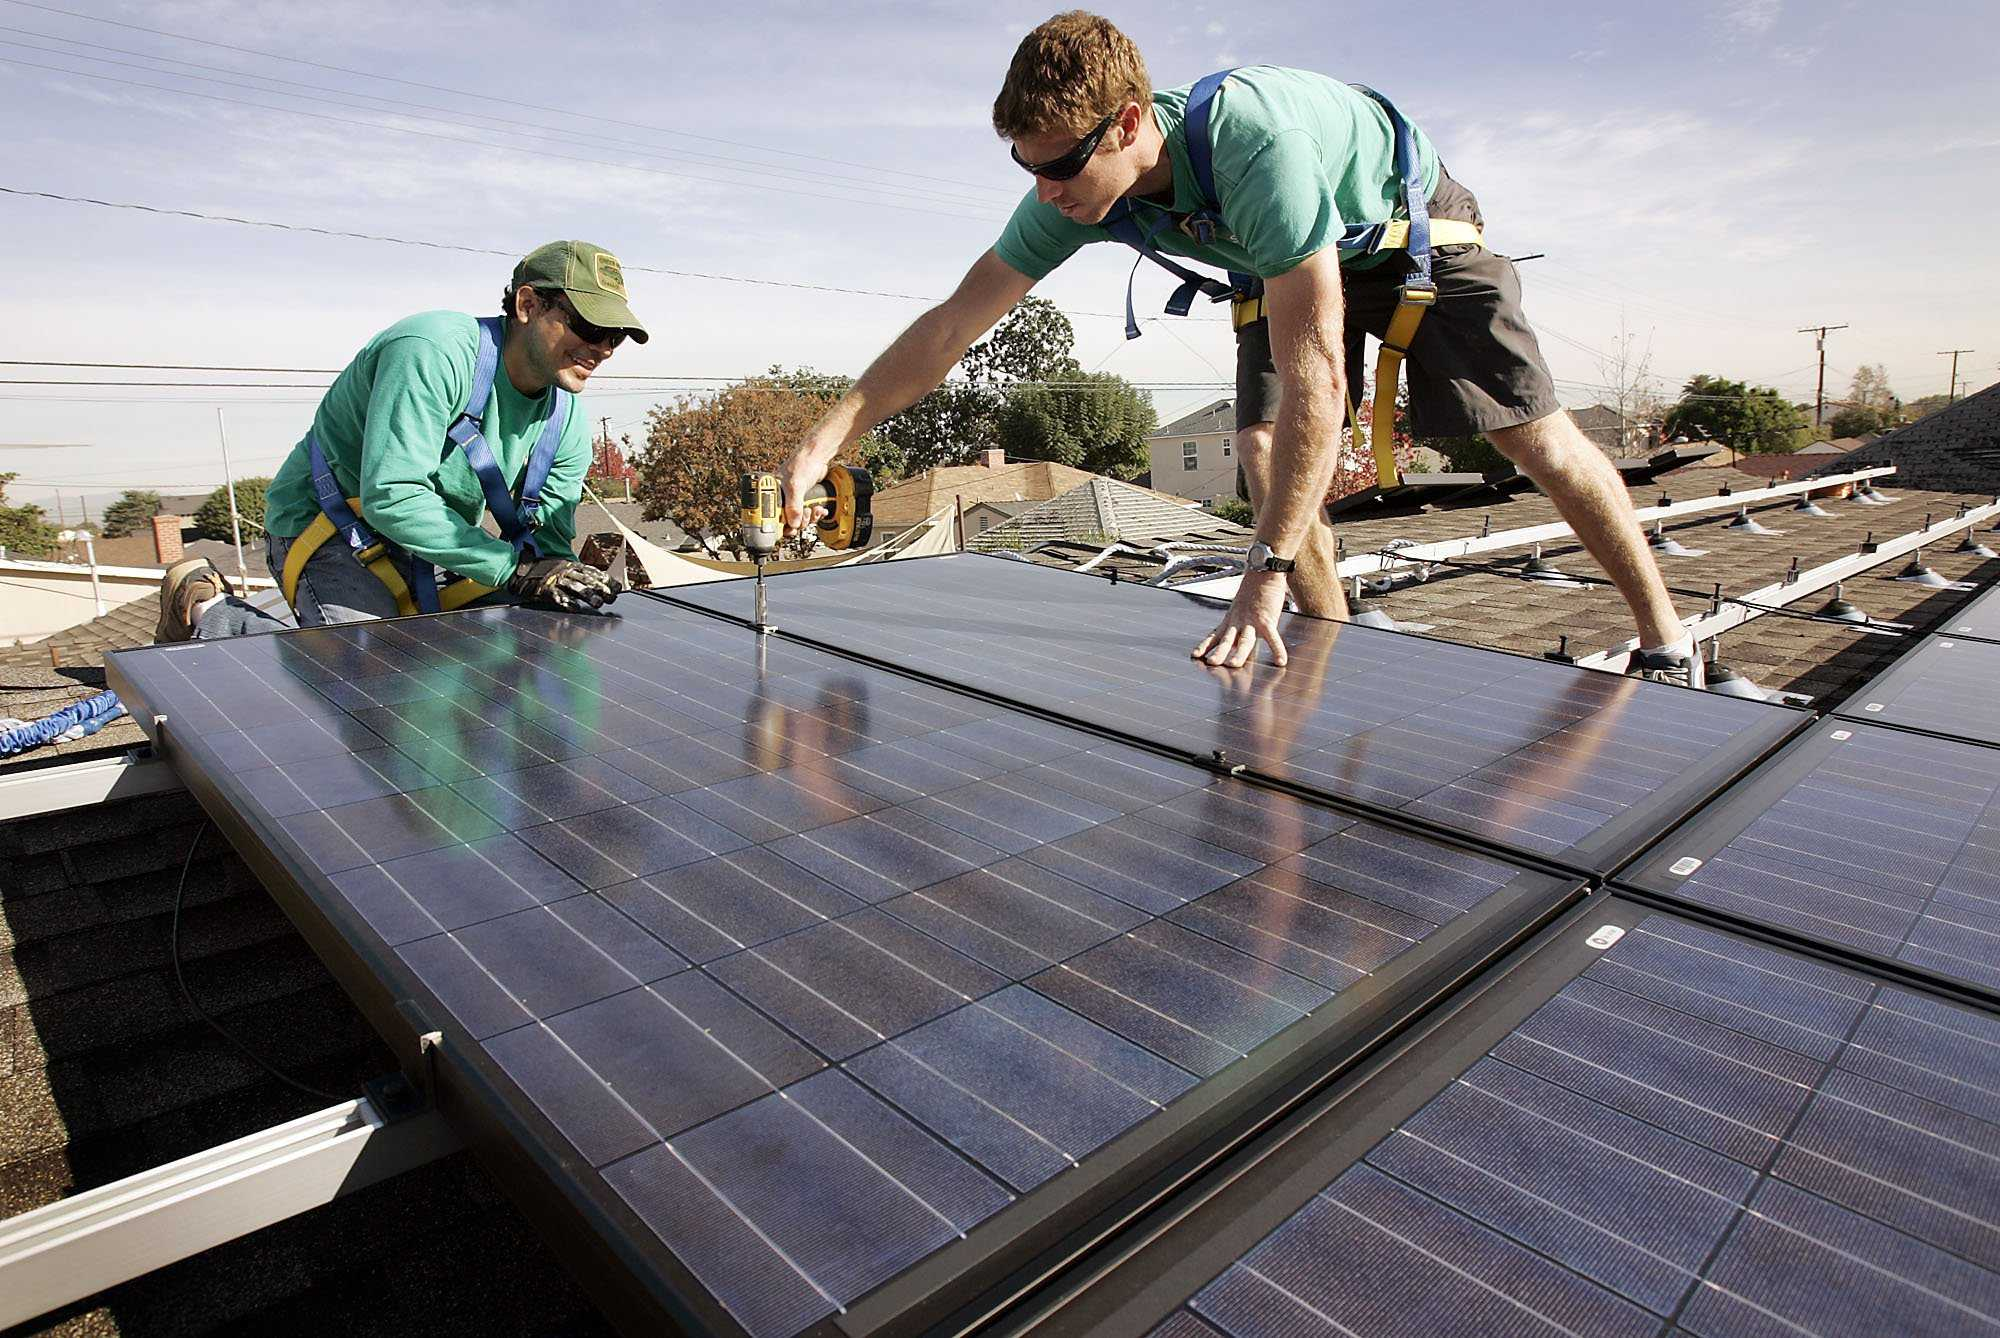 Joey Ramirez, left, and Taran Stone with SolarCity install solar modules on the roof of a Long Beach, Calif., home. Florida